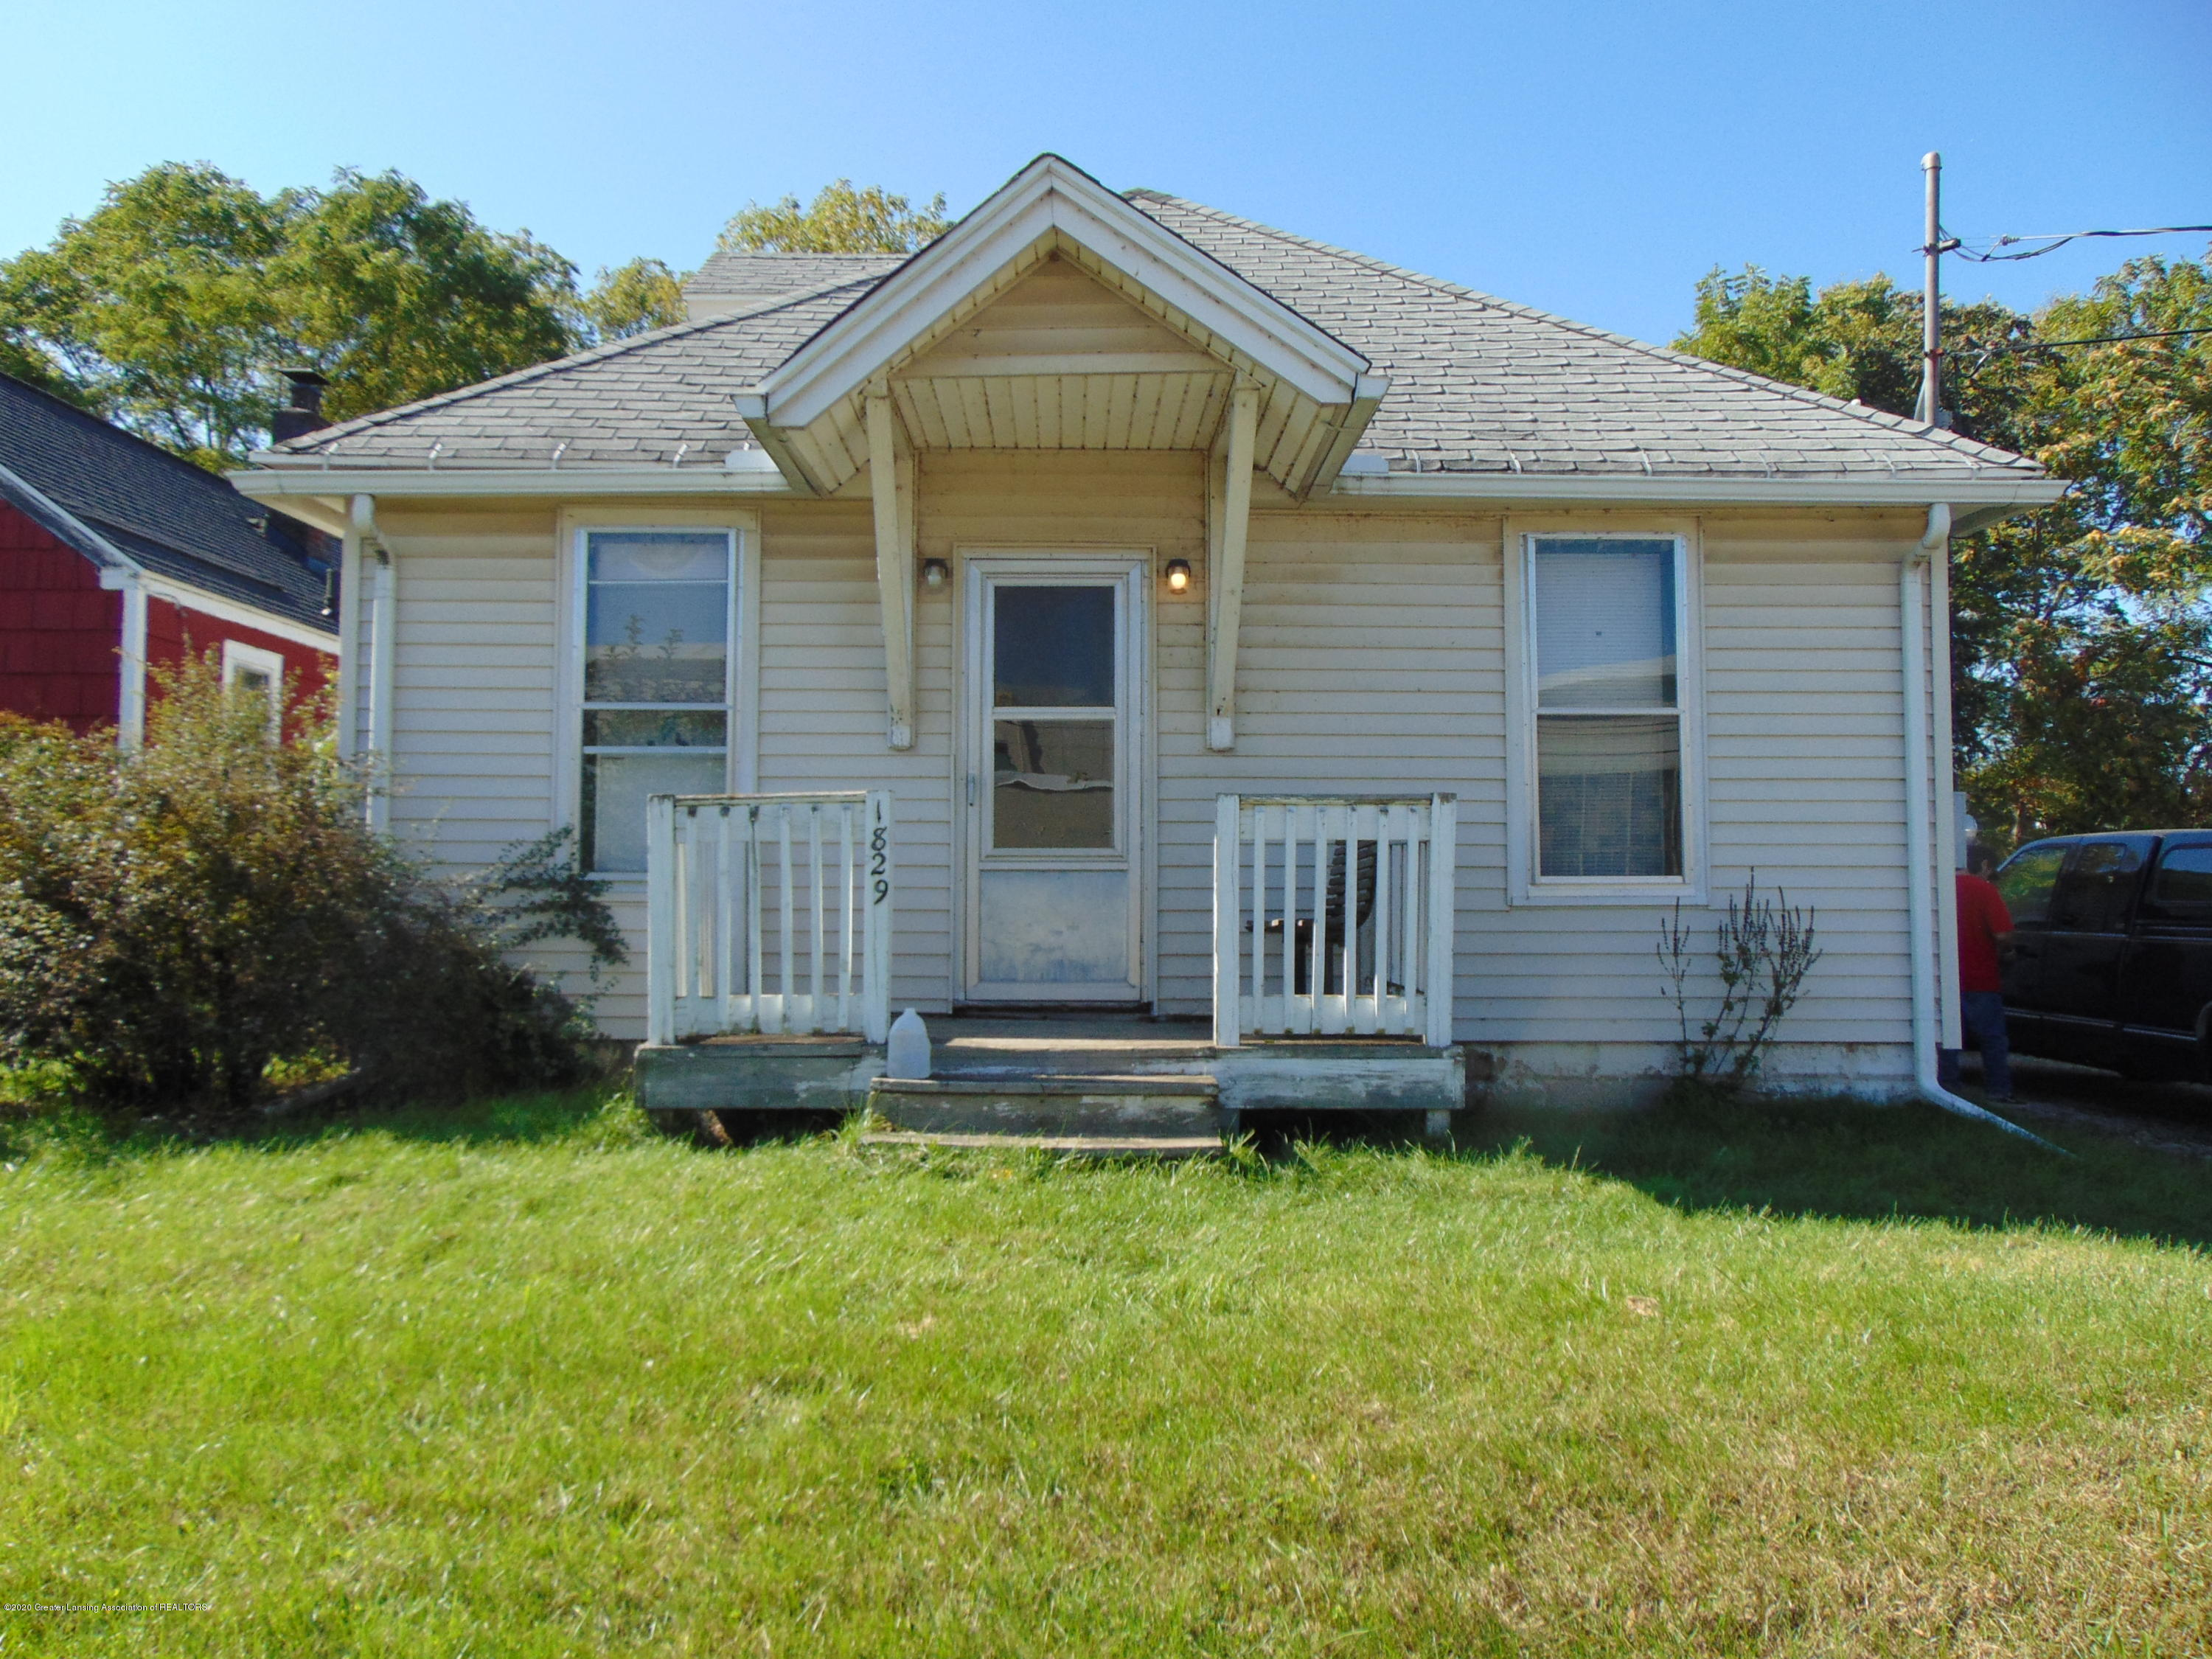 1829 Sunset Ave - sunset pic 11 - 1